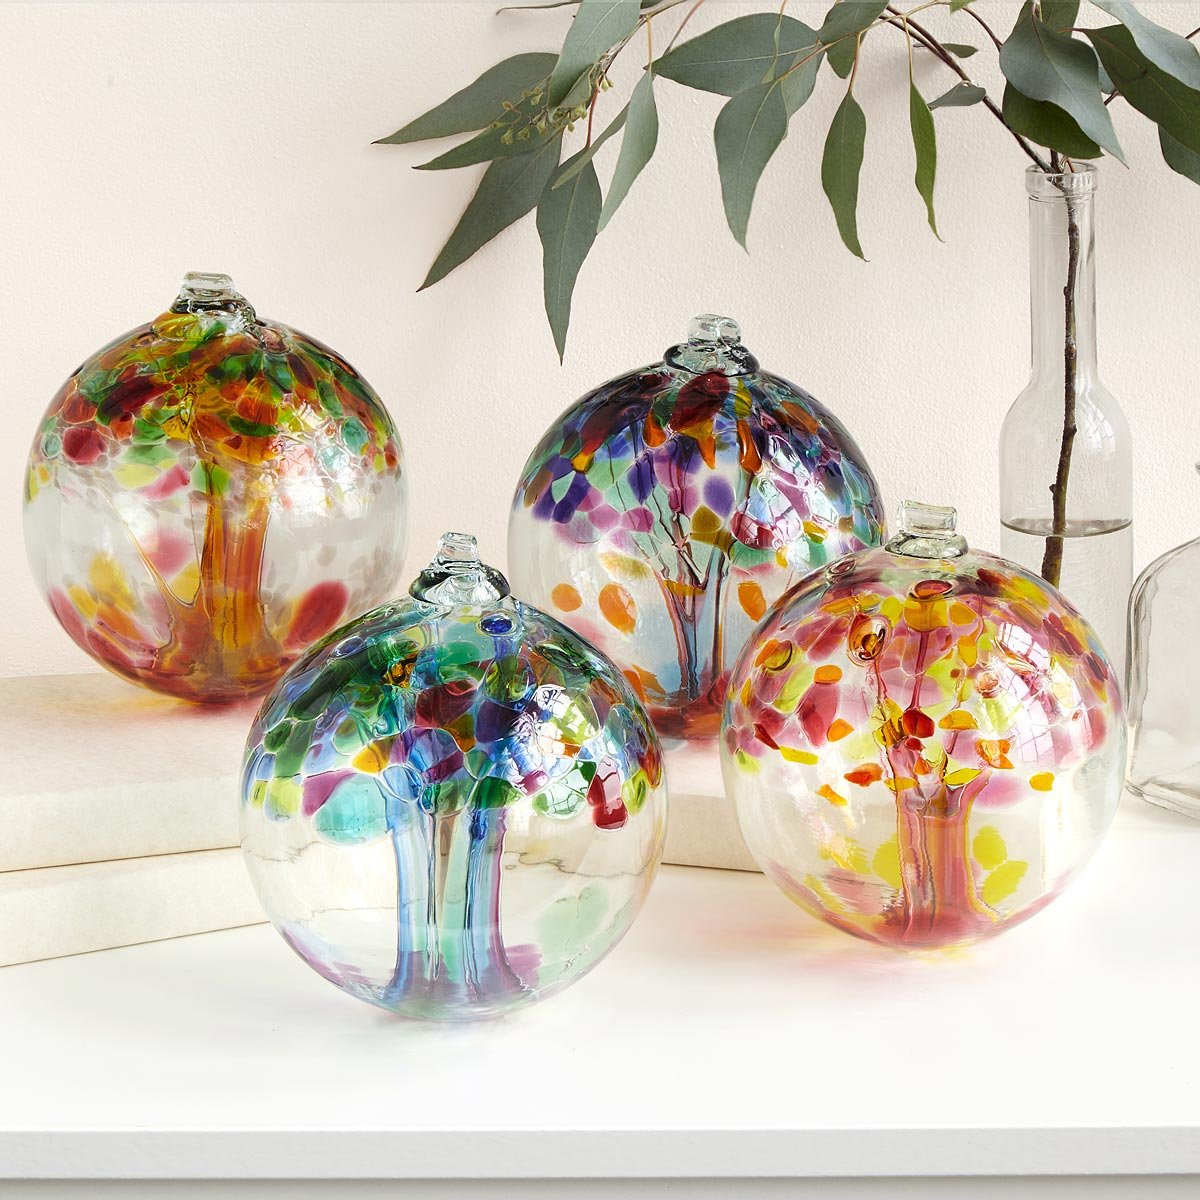 Recycled glass globes make a holiday statement